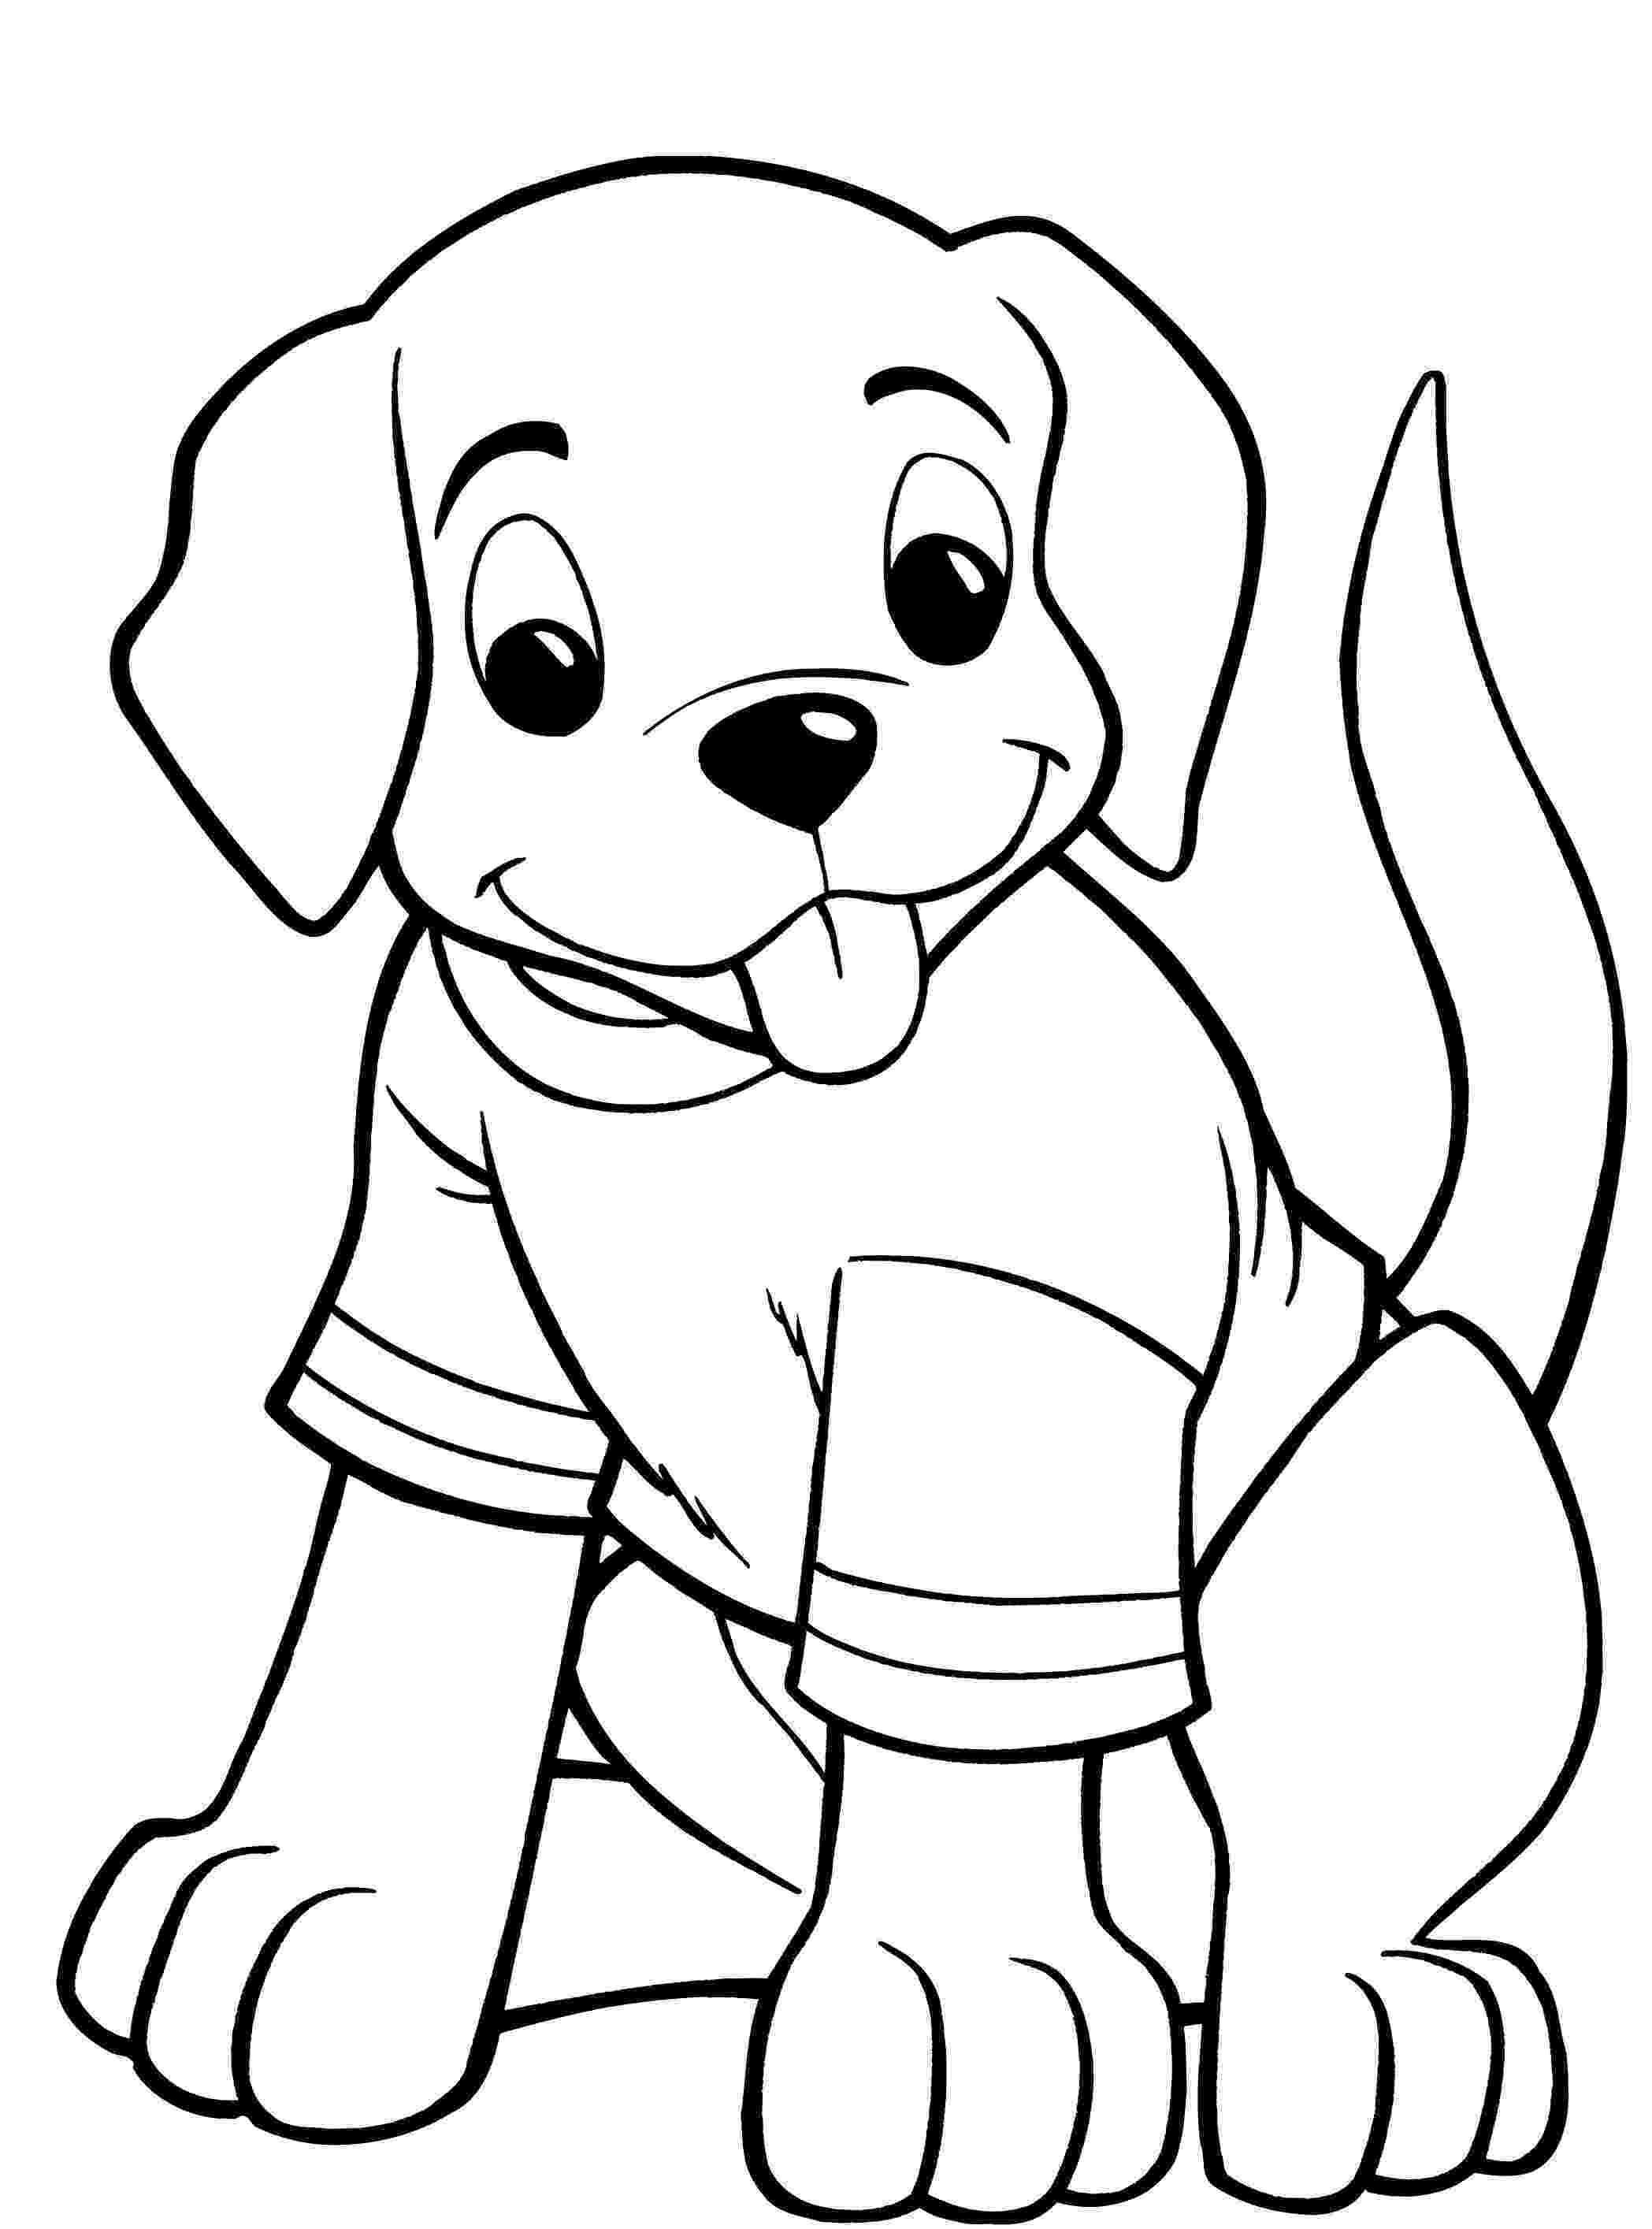 colouring pages of a dog free printable dog coloring pages for kids a pages colouring of dog